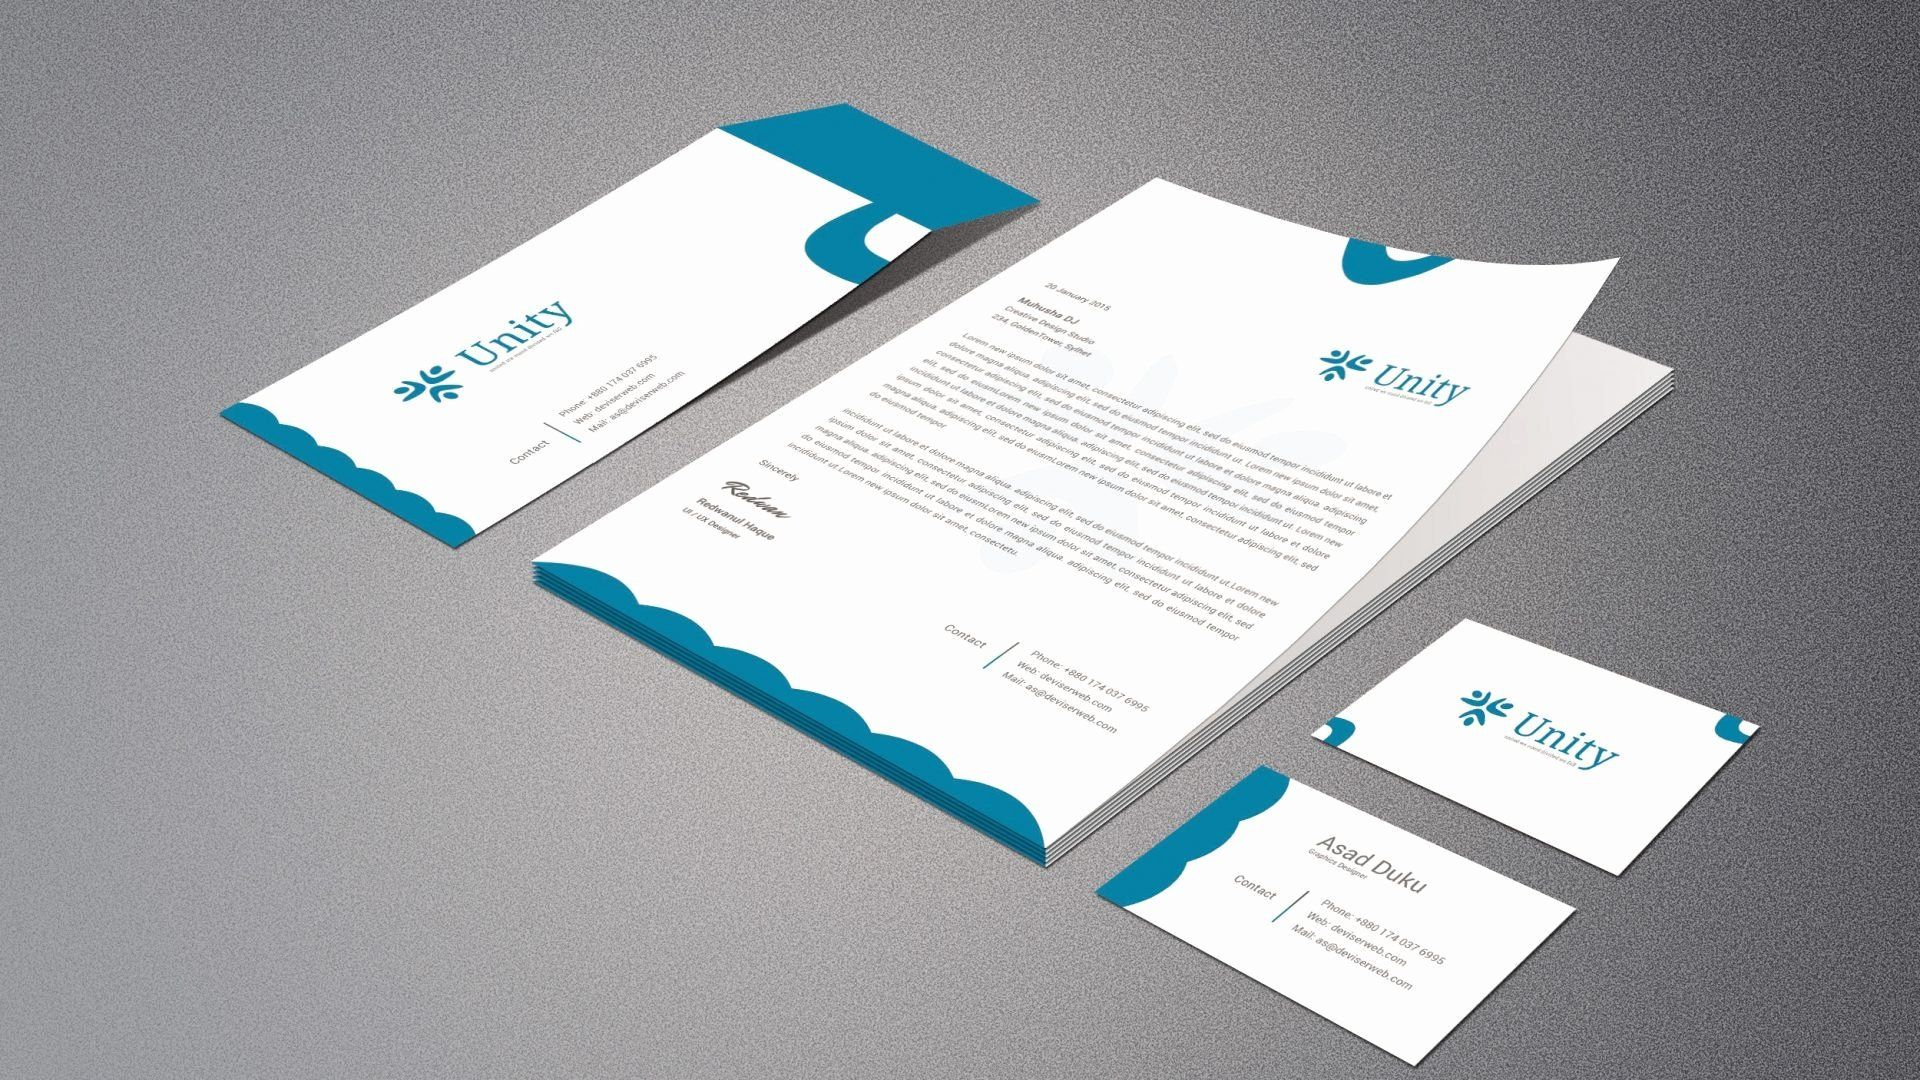 Avery Business Card Template 28878 Elegant Business Cards Avery Template Image C Sample Business Cards Business Card Template Word Free Business Card Templates